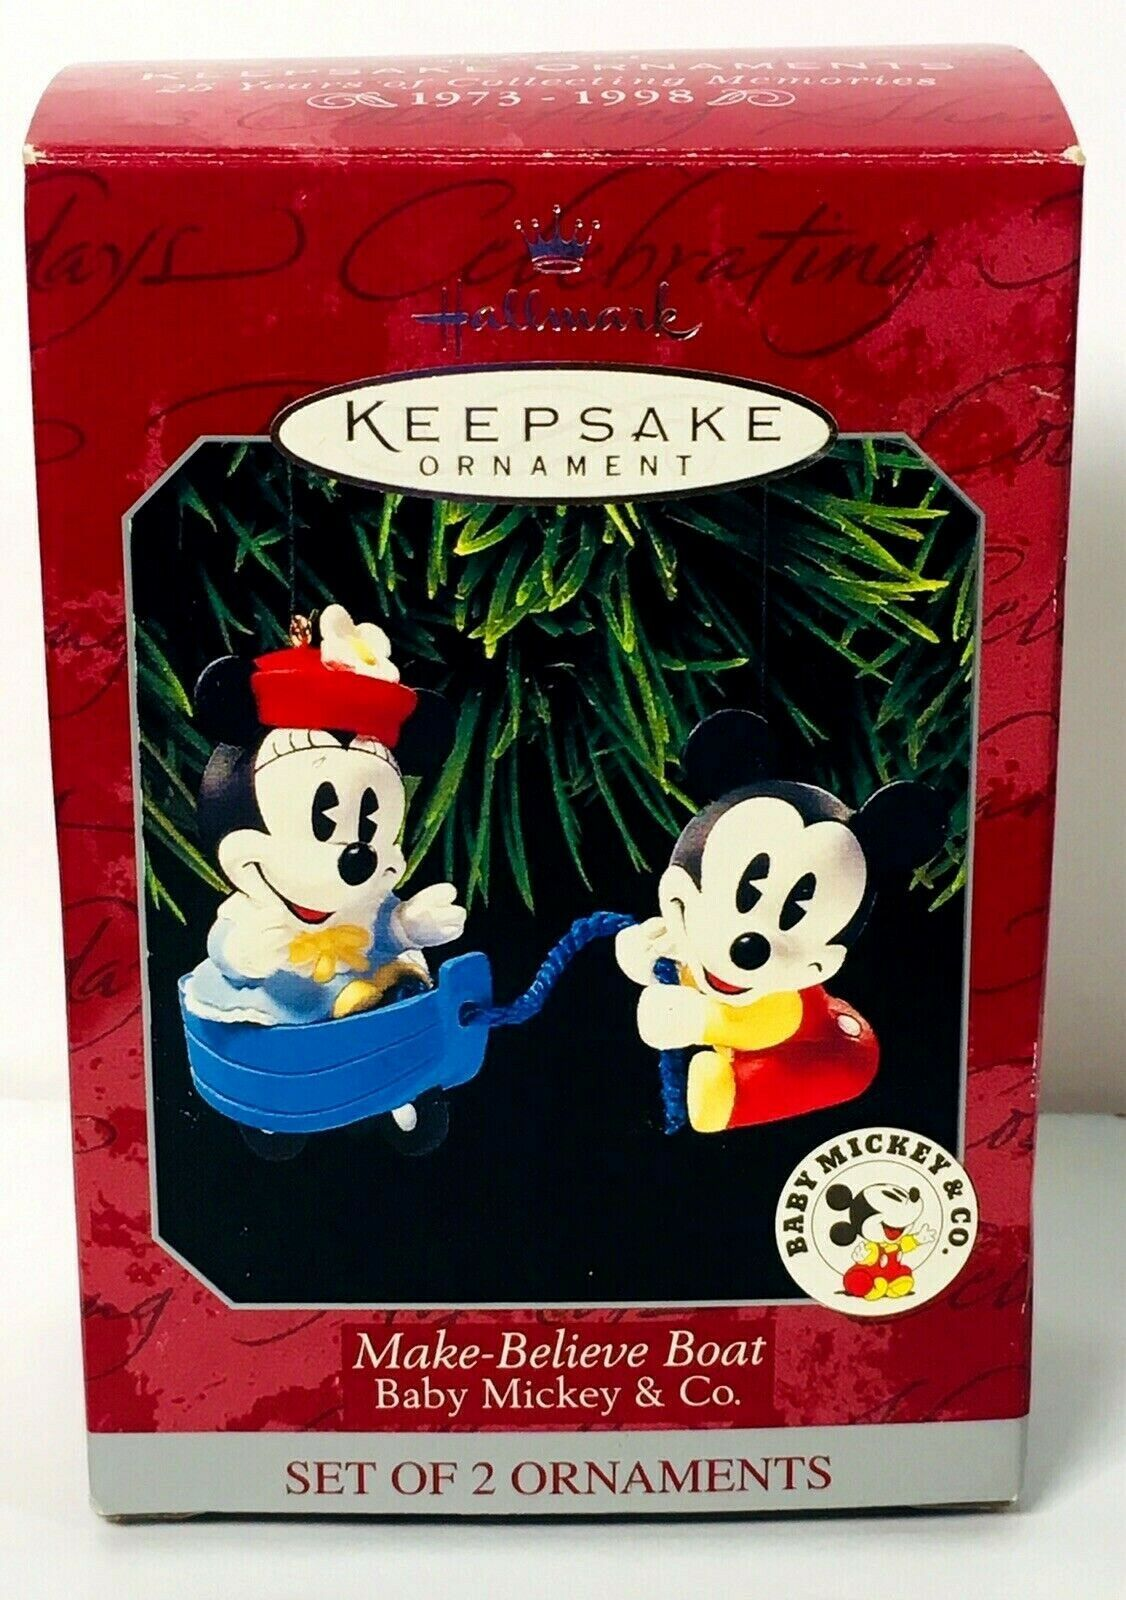 Primary image for Hallmark Keepsake Ornament Make-Believe Boat Baby Mickey & Co Minnie Disney